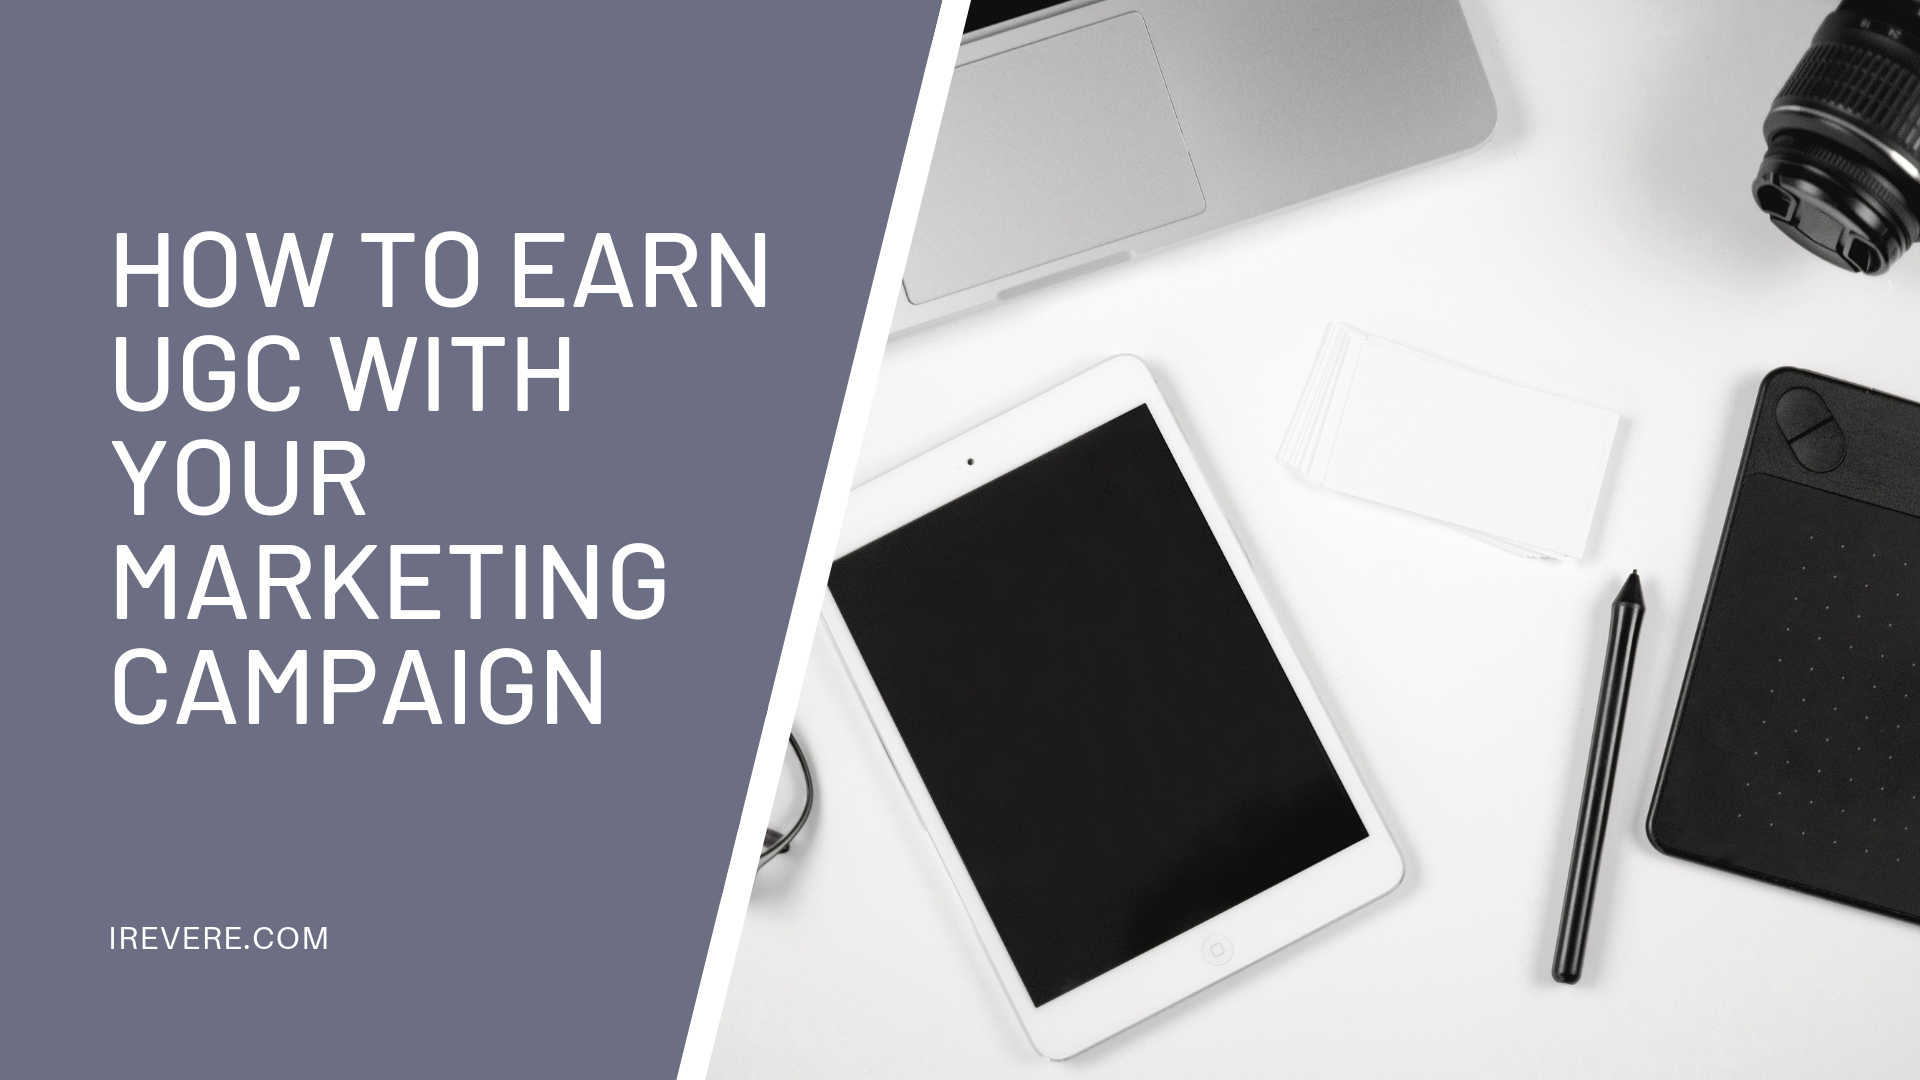 How to Earn UGC with your Marketing Campaign